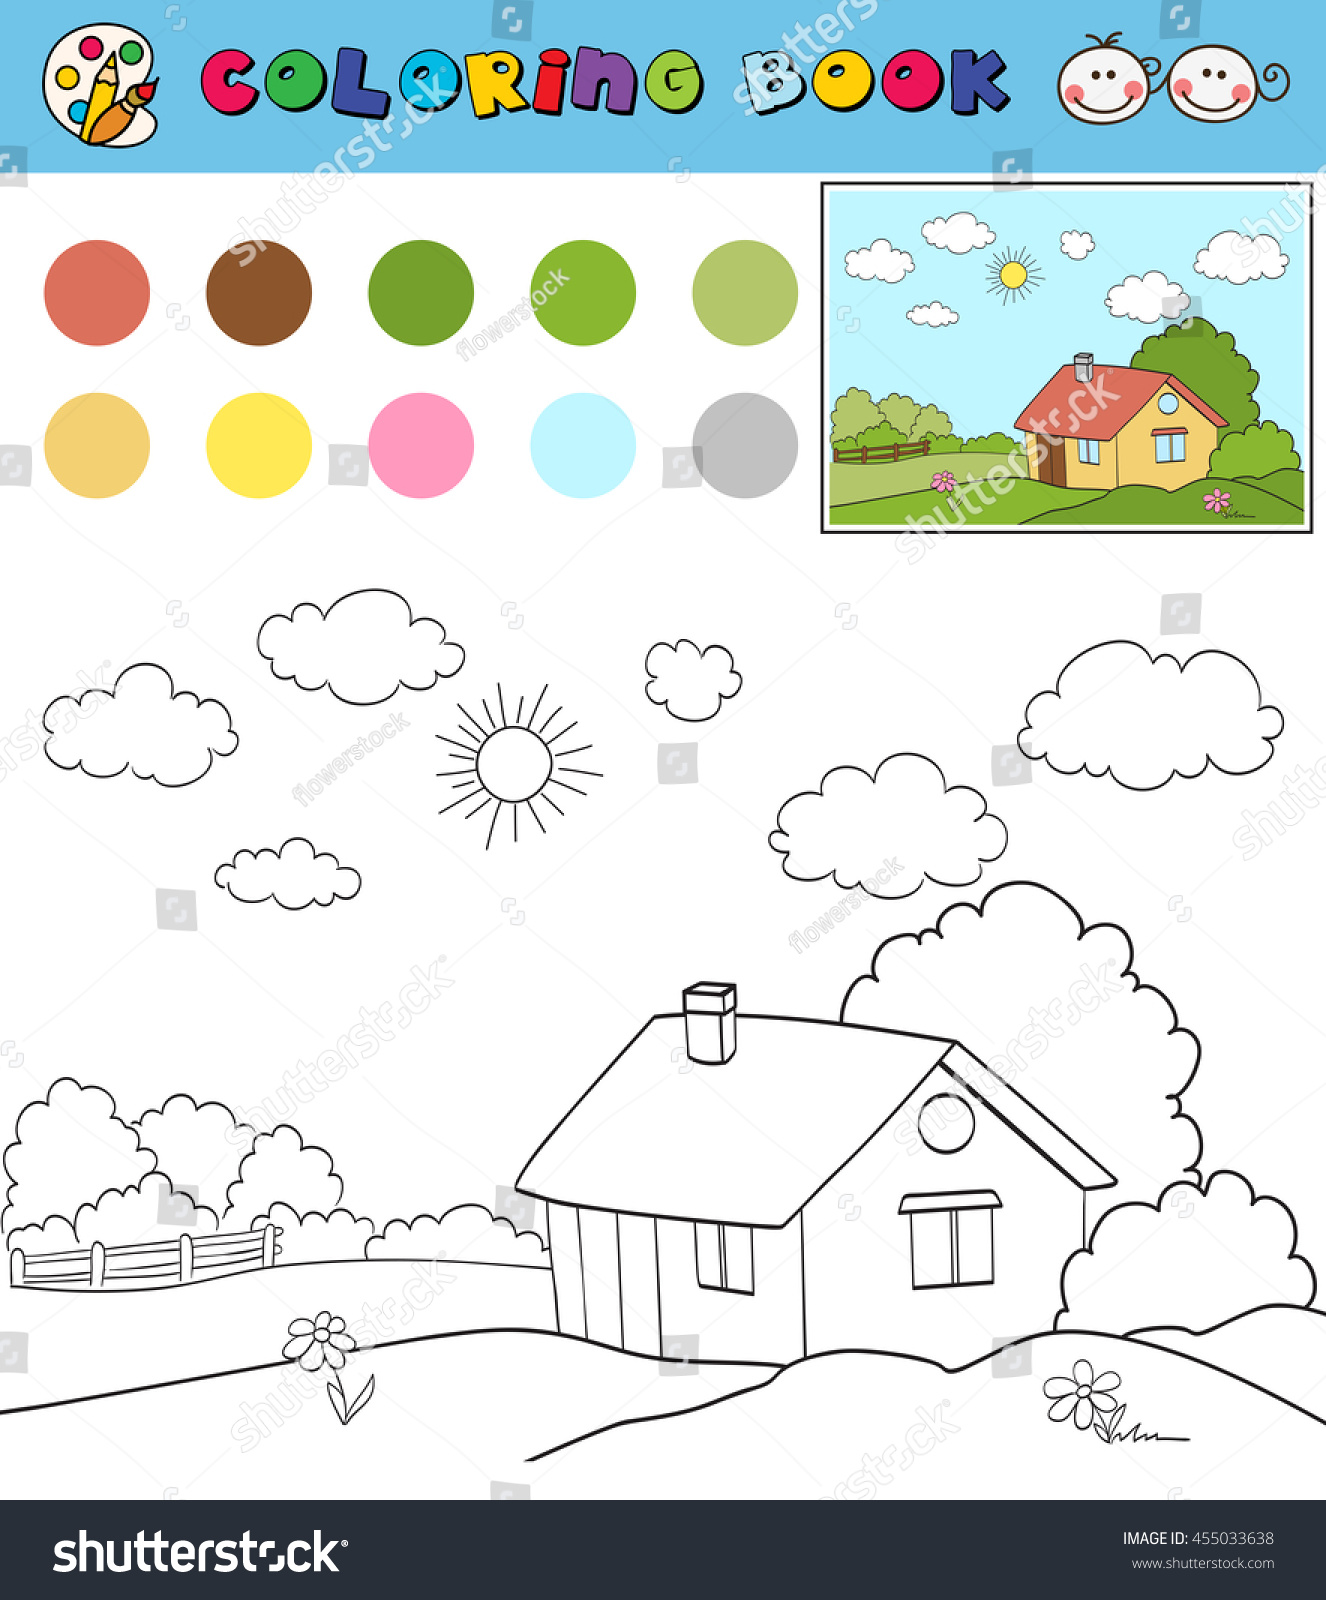 Coloring Book Page Template With House On Countryside Landscape Color Samples Vector Illustration